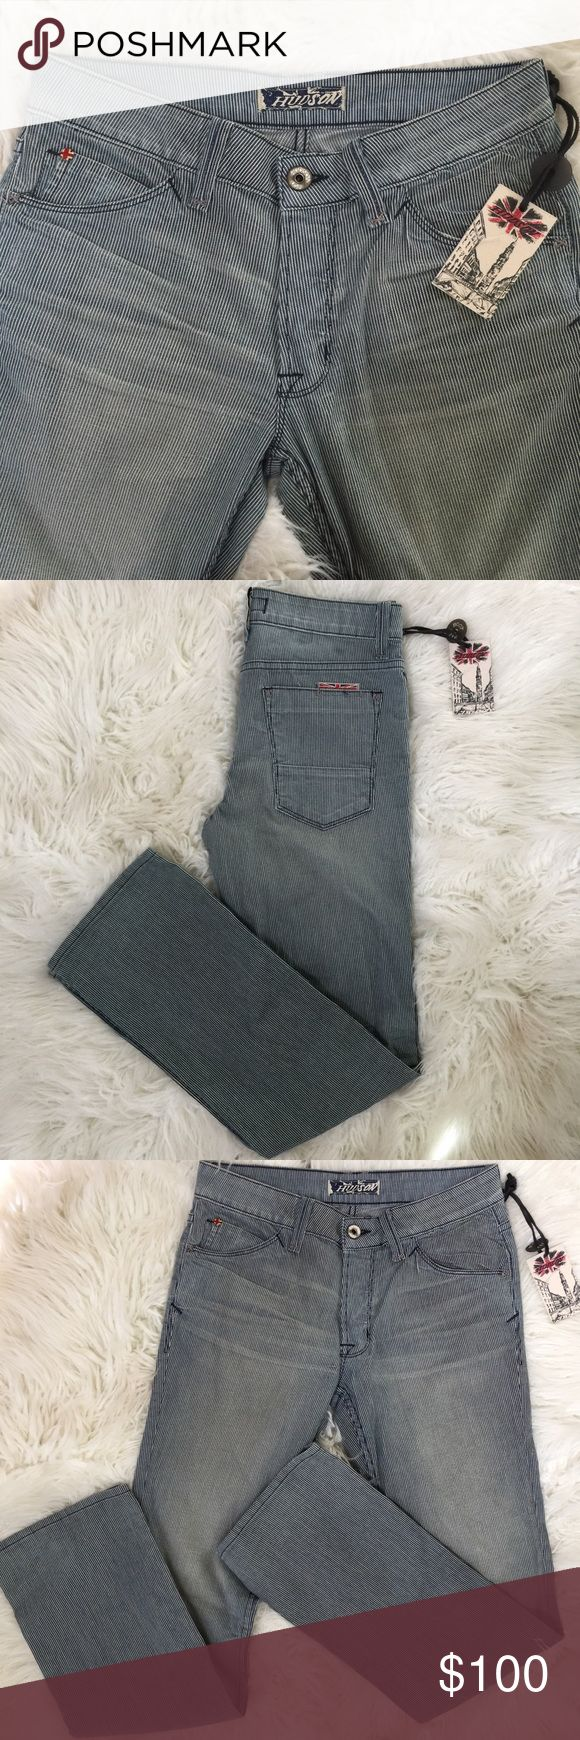 Authentic Hudson Bootleg Jeans NWT Authentic Hudson jeans new with tags. Size 32 💕 Hudson Jeans Jeans Boot Cut